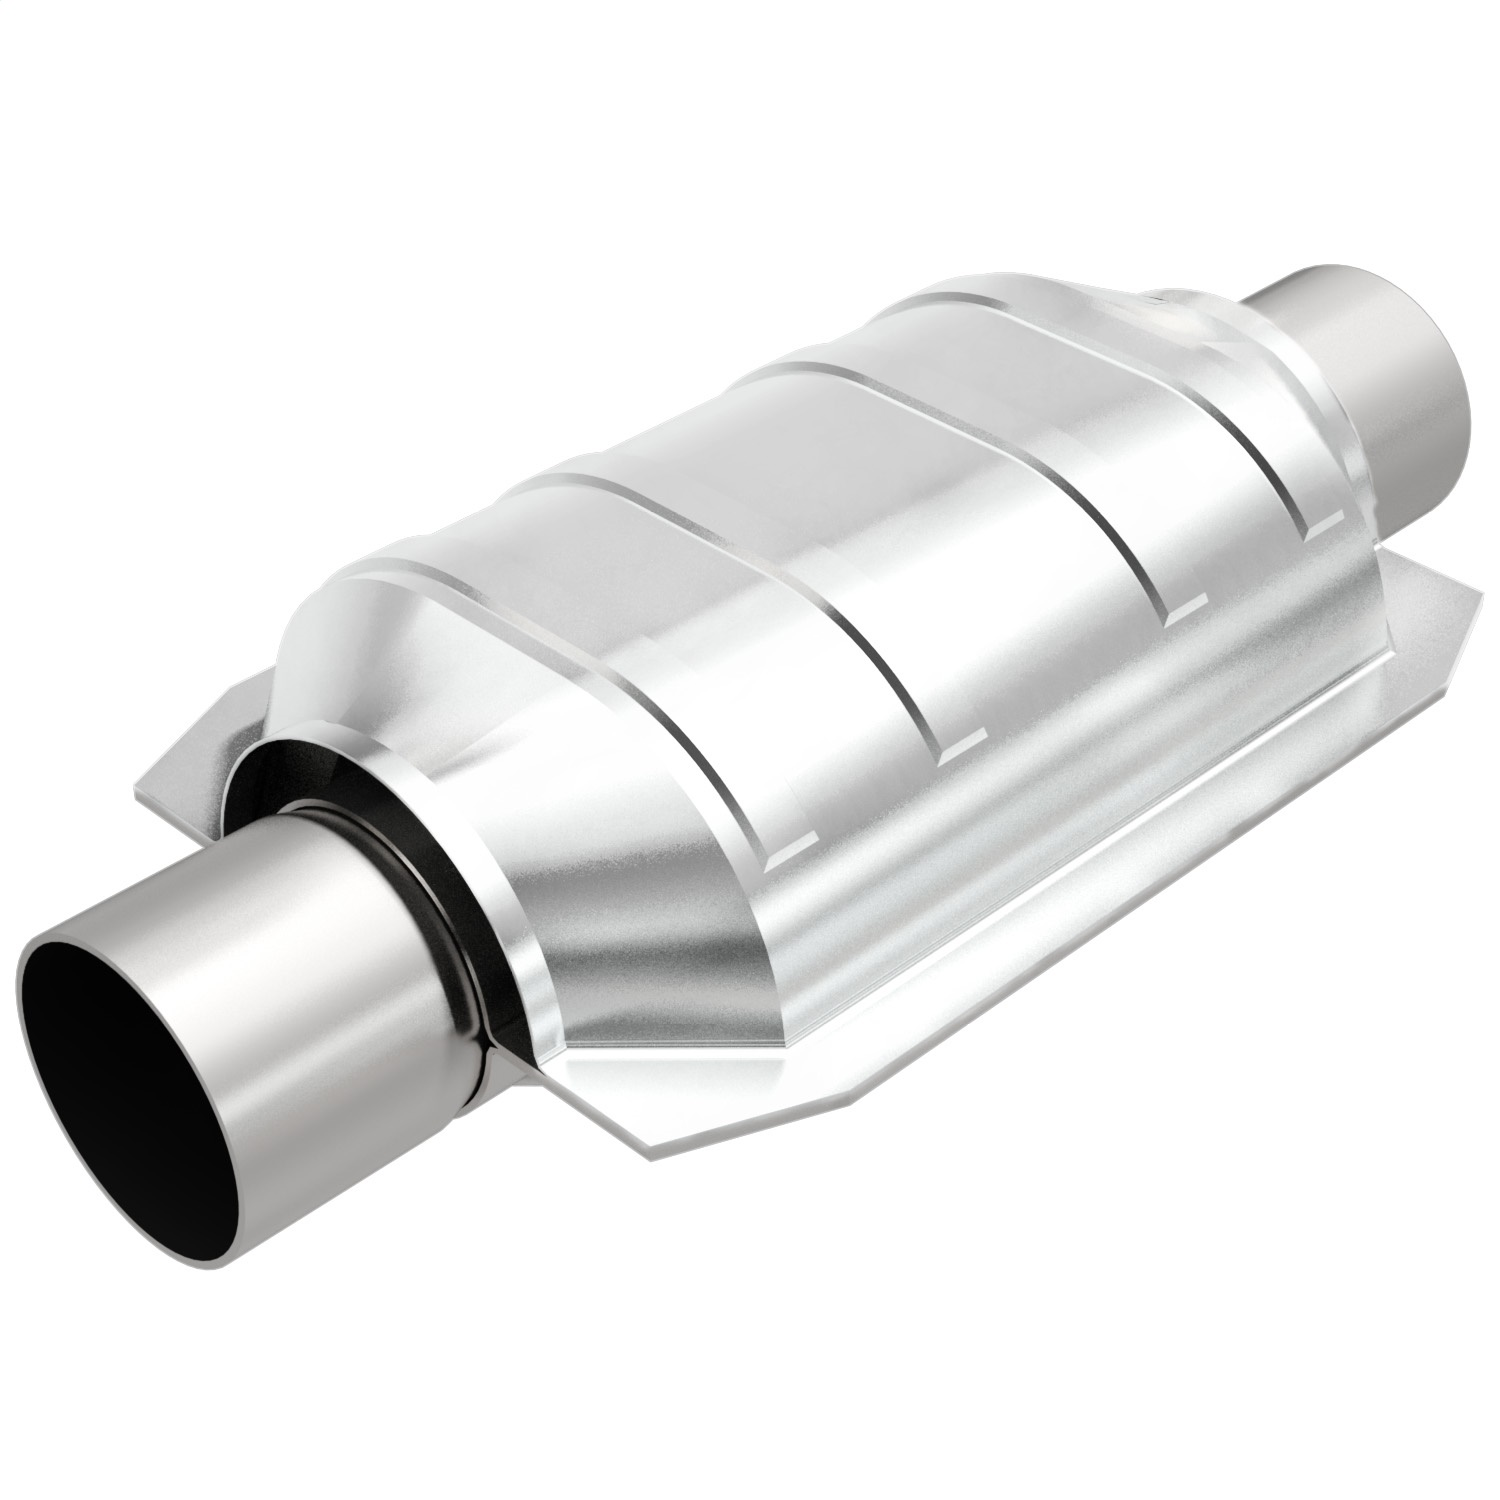 MagnaFlow Exhaust Products Catalytic Converter (333105)